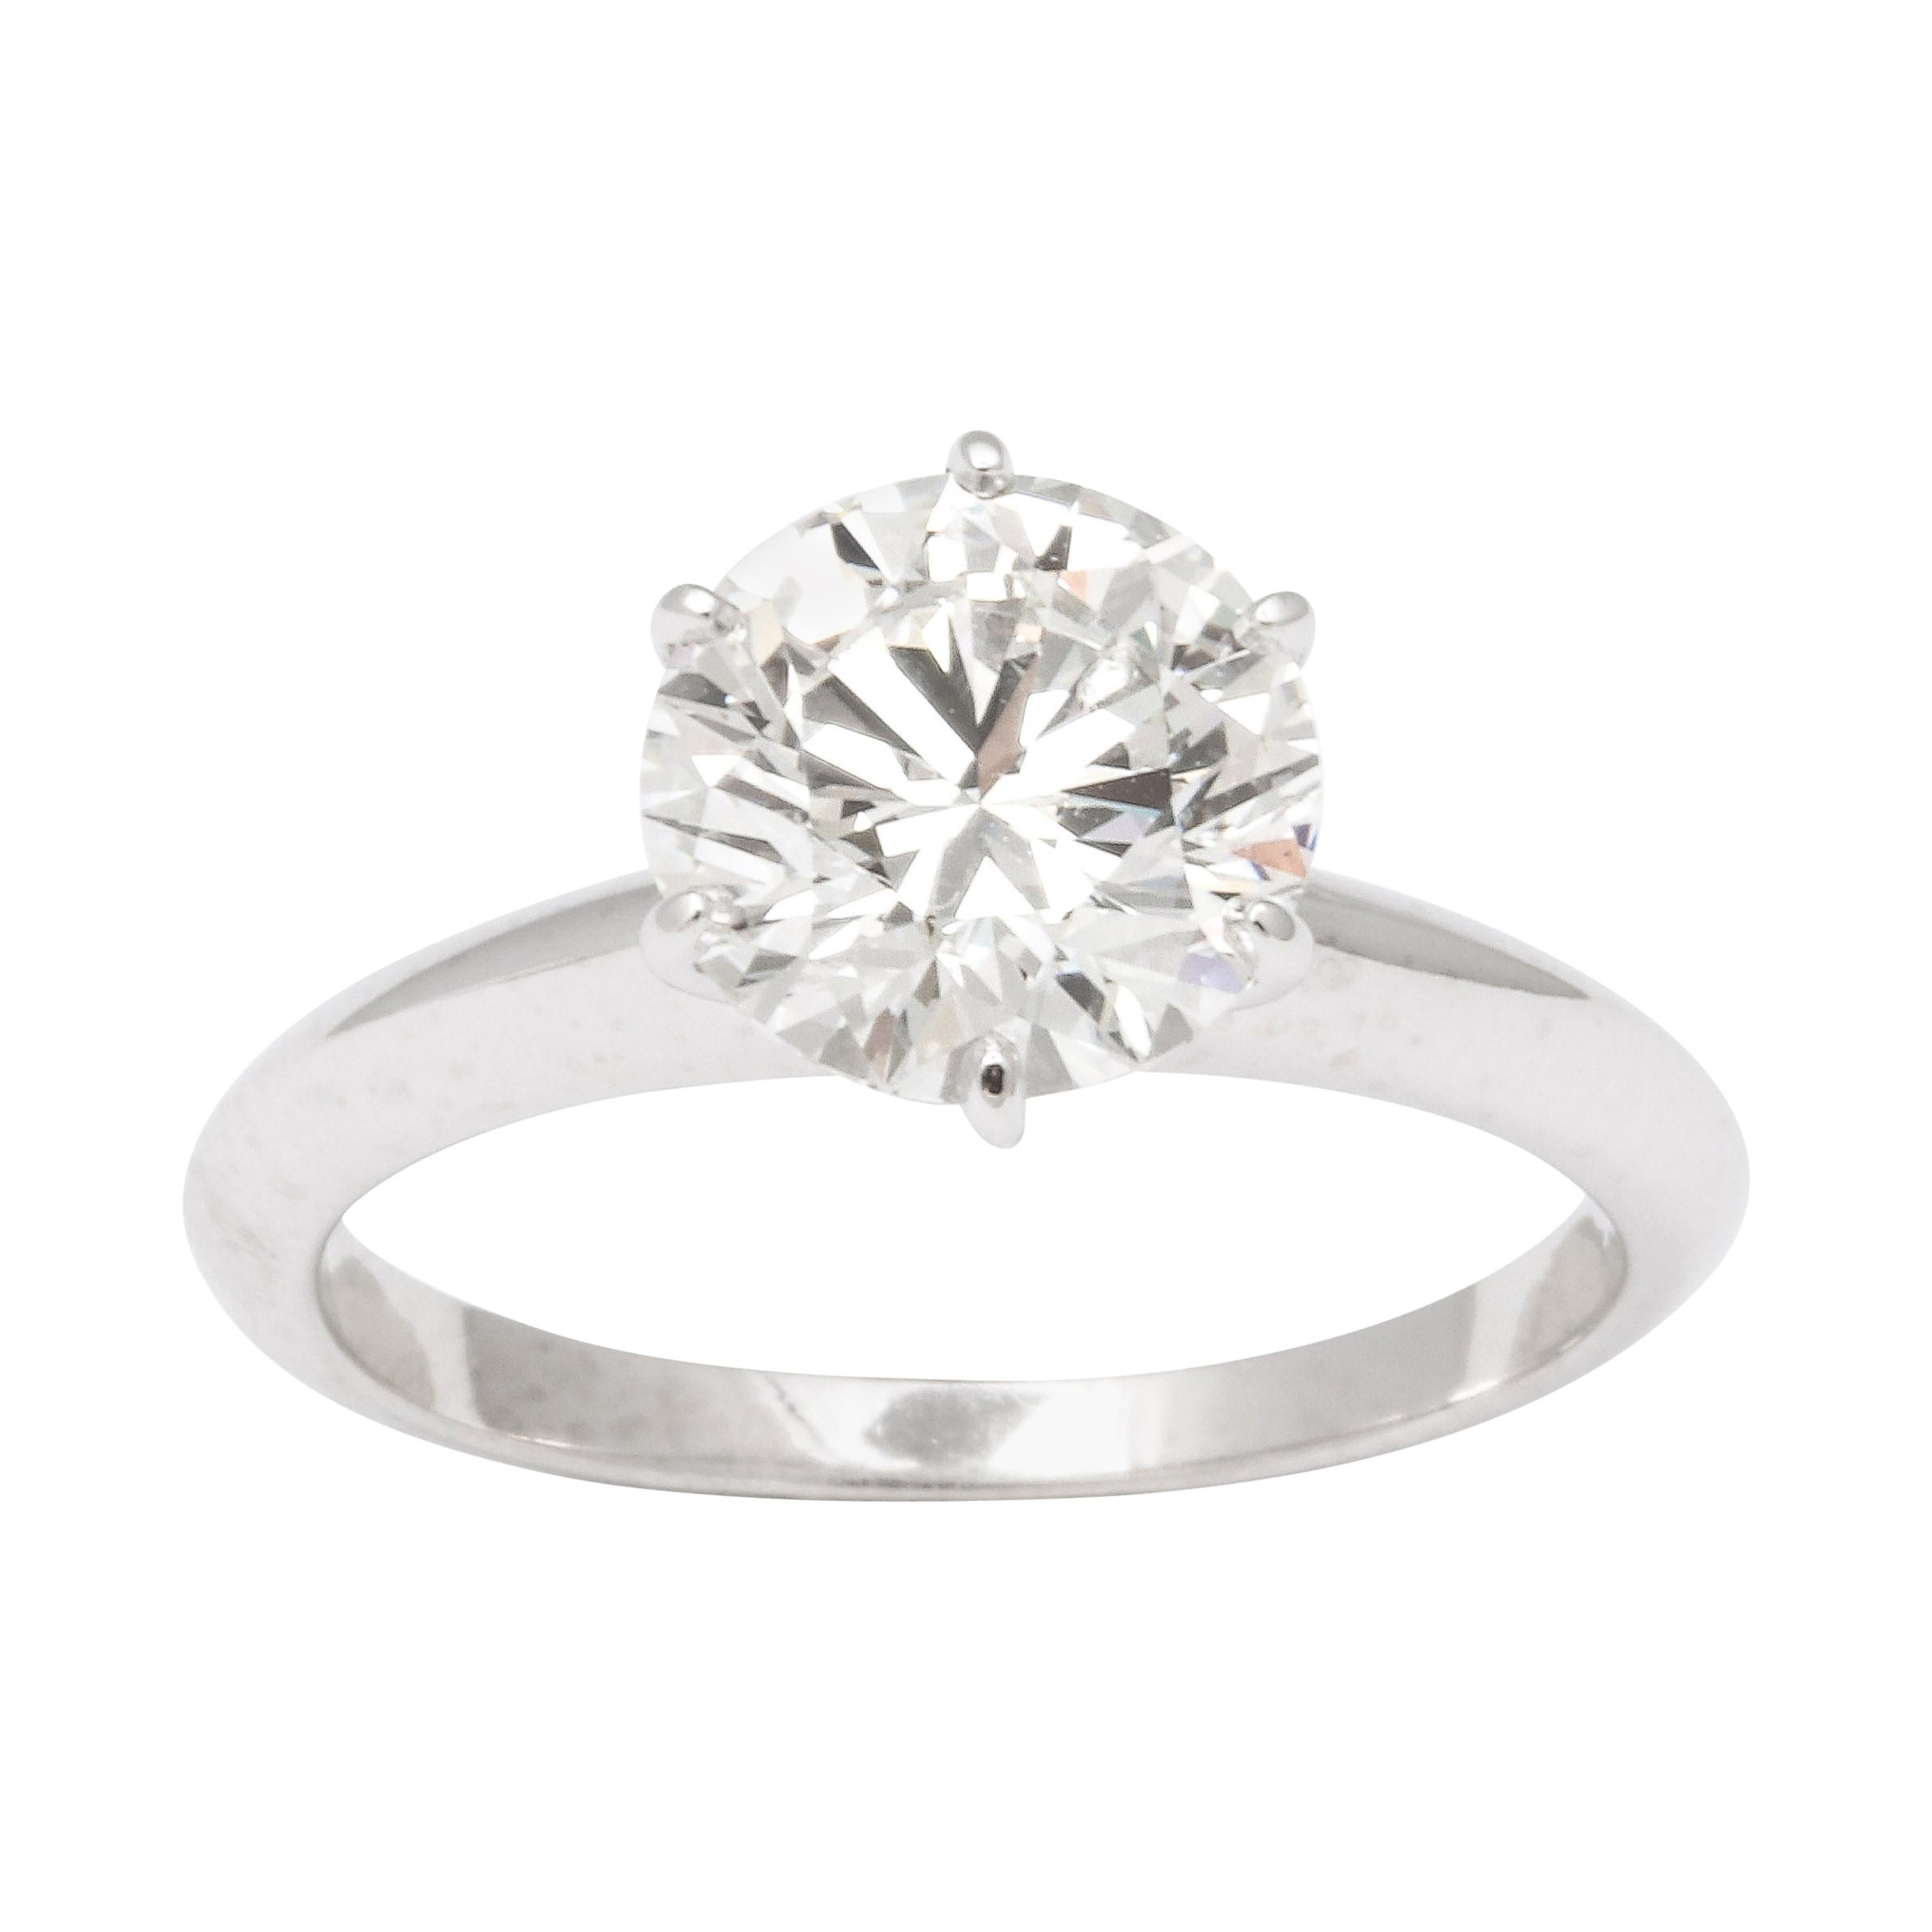 Tiffany & Co. Solitaire Engagement Ring